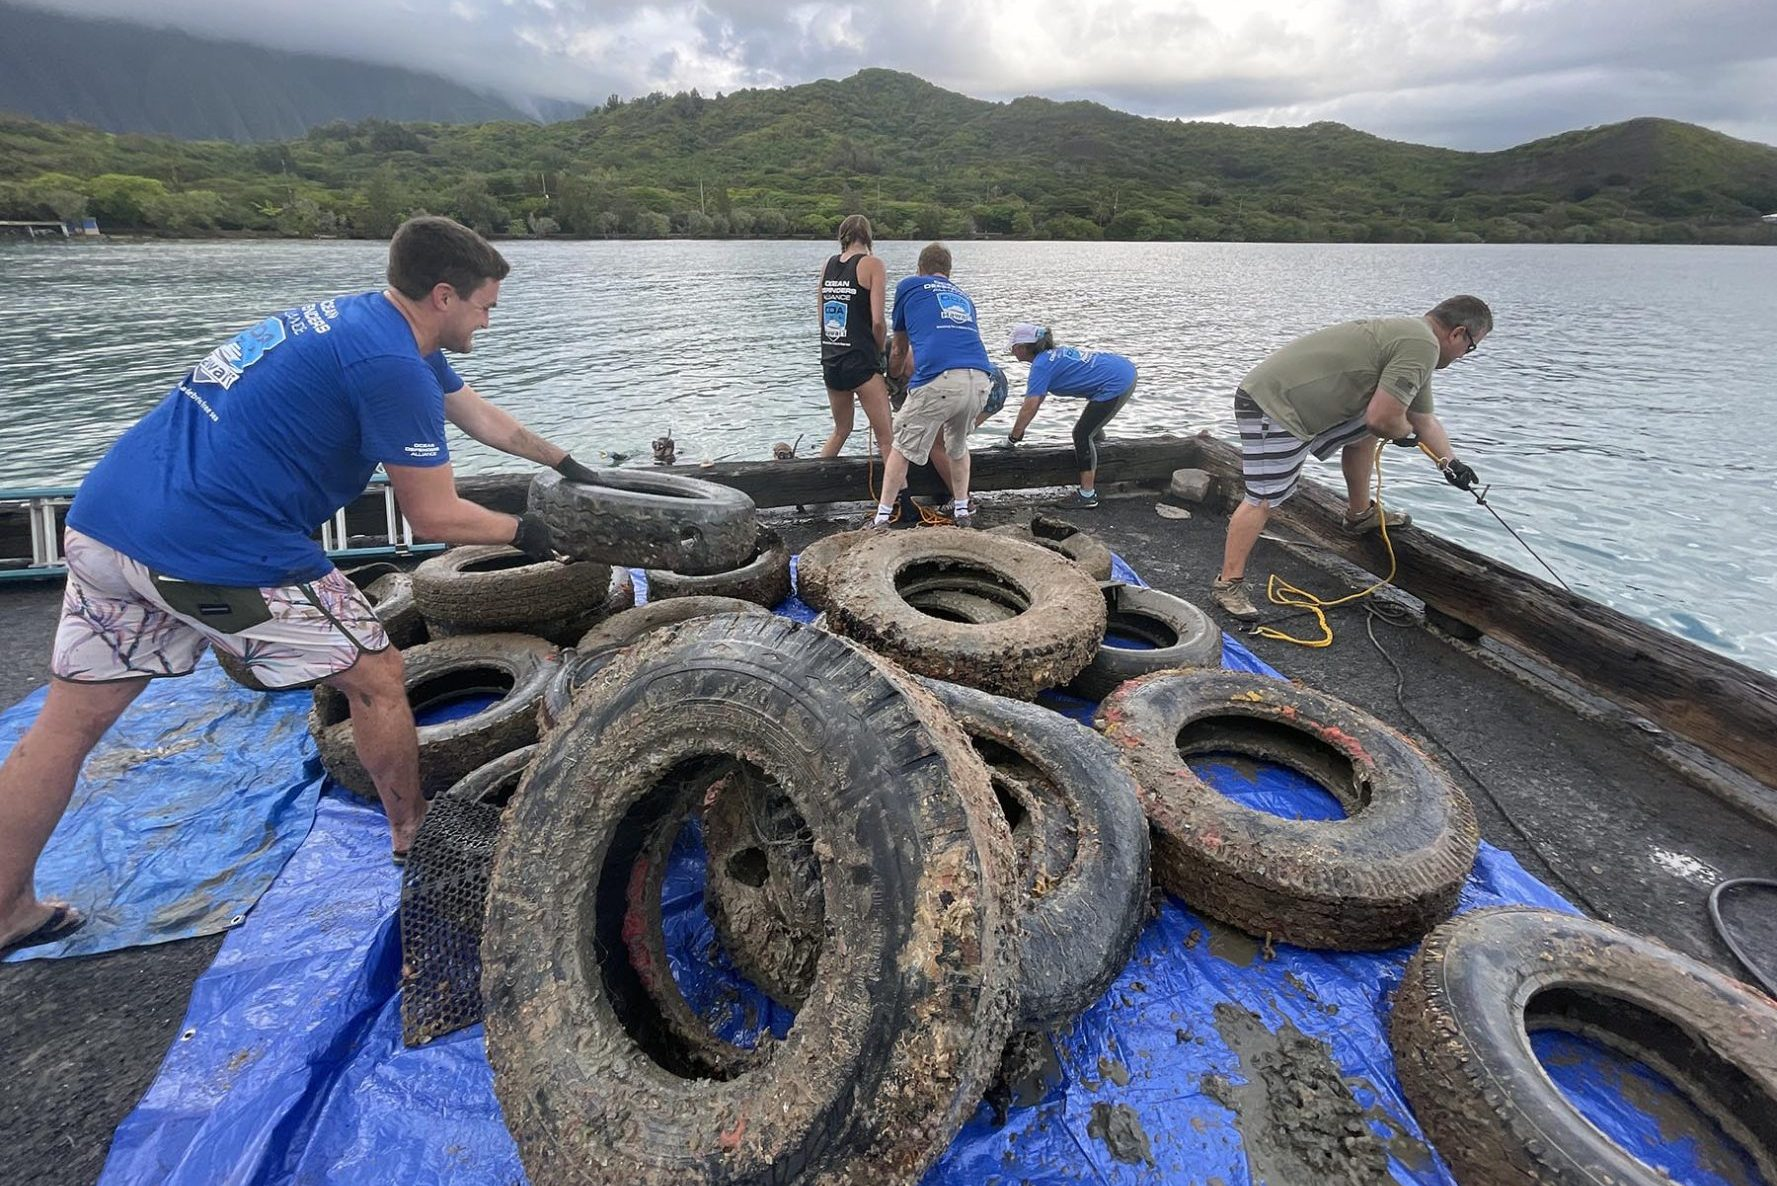 <p>This event marked the first time anyone had organized an effort to remove debris from the bay.</p>